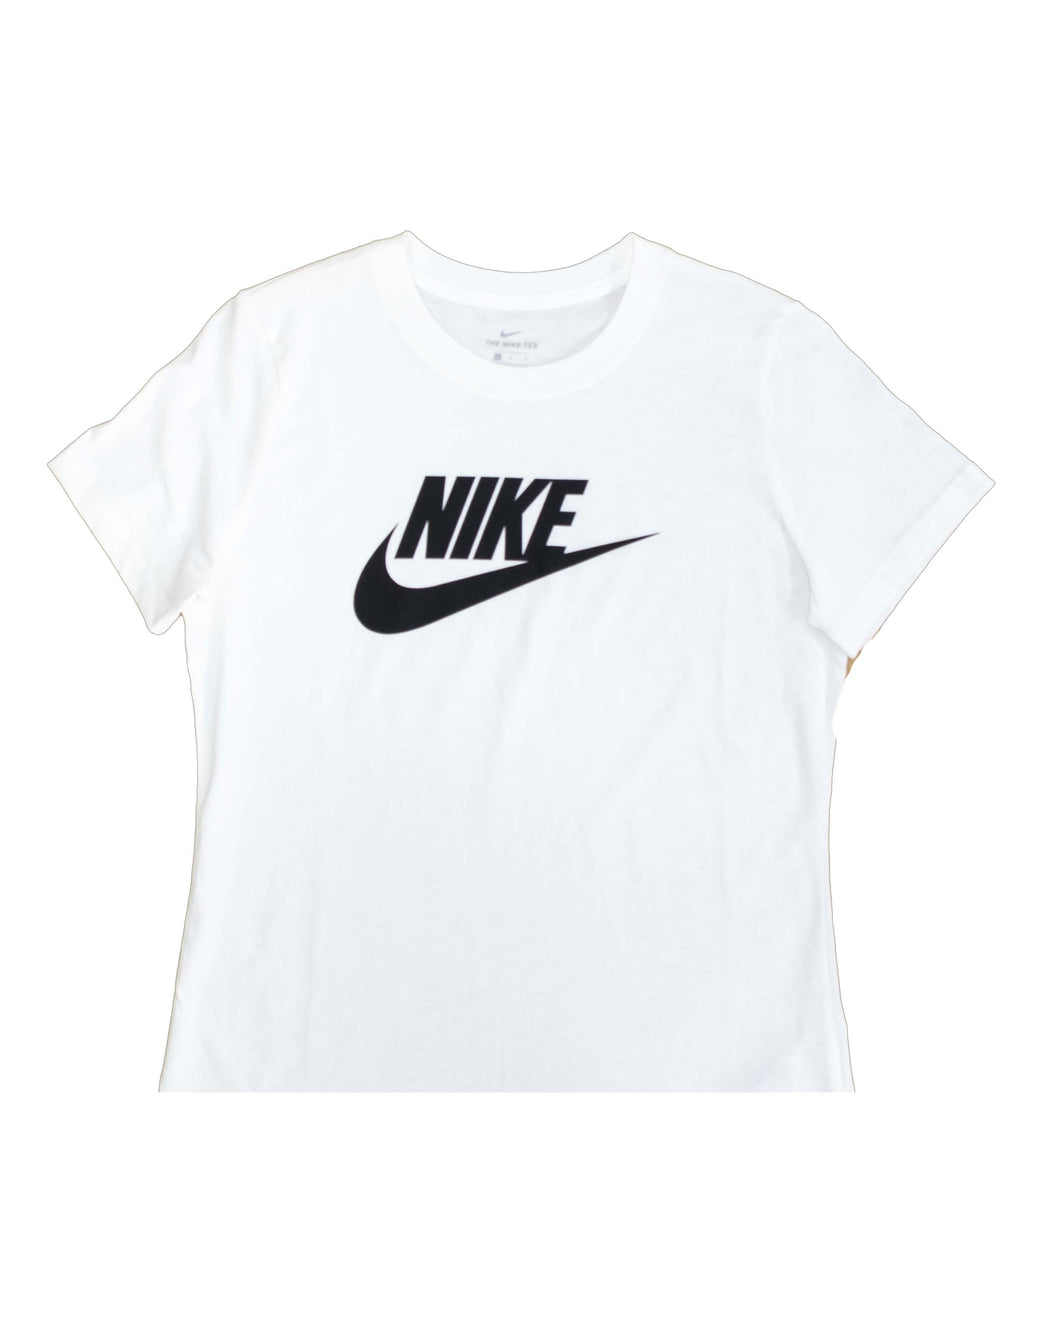 NIKE T SHIRT ESSENTIAL ICON FUTURE WHITE BLACK